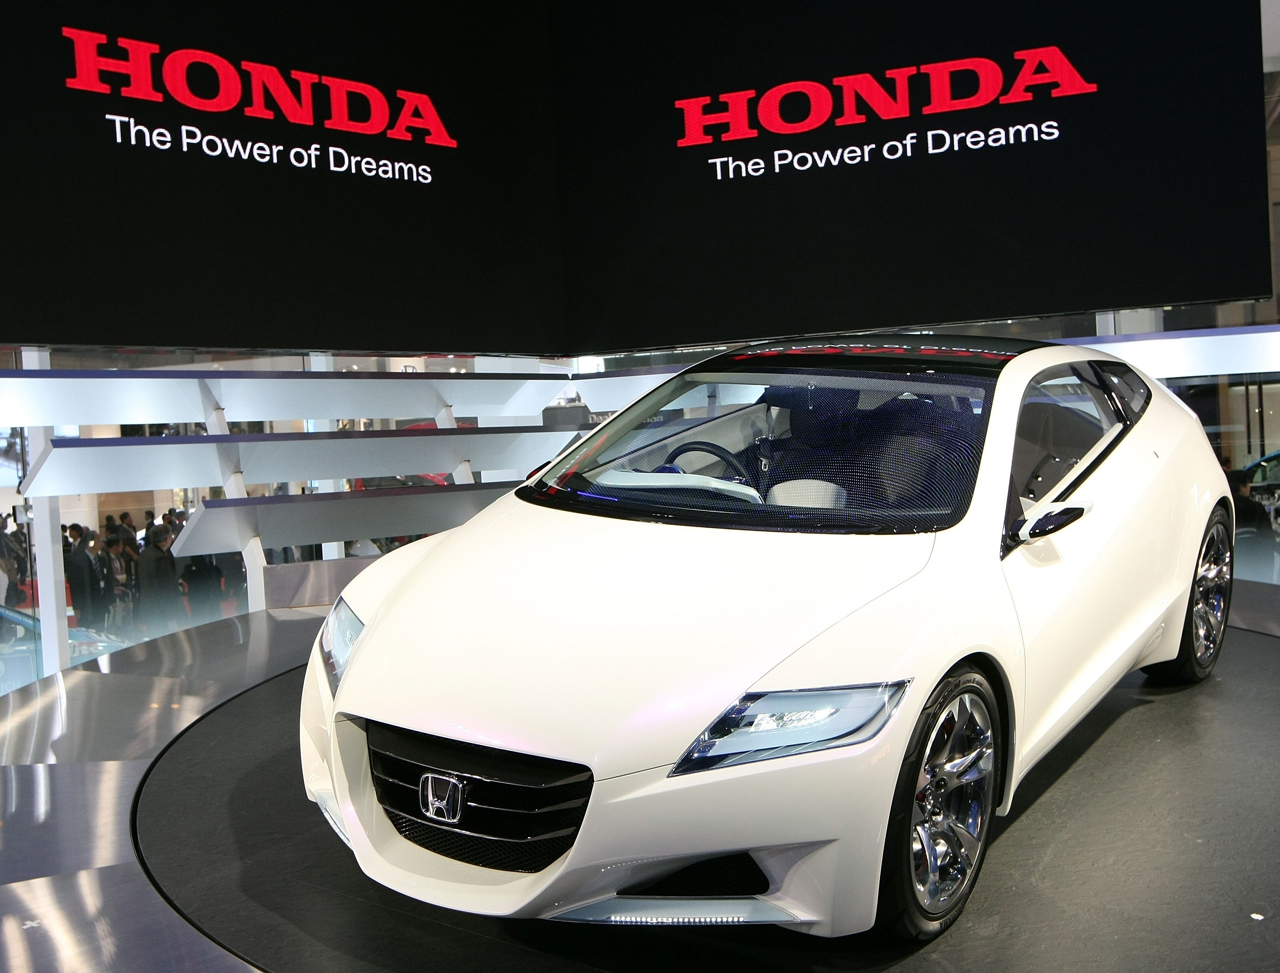 http://gustomobil.files.wordpress.com/2009/06/honda_cr-zstskua8tmd.jpg